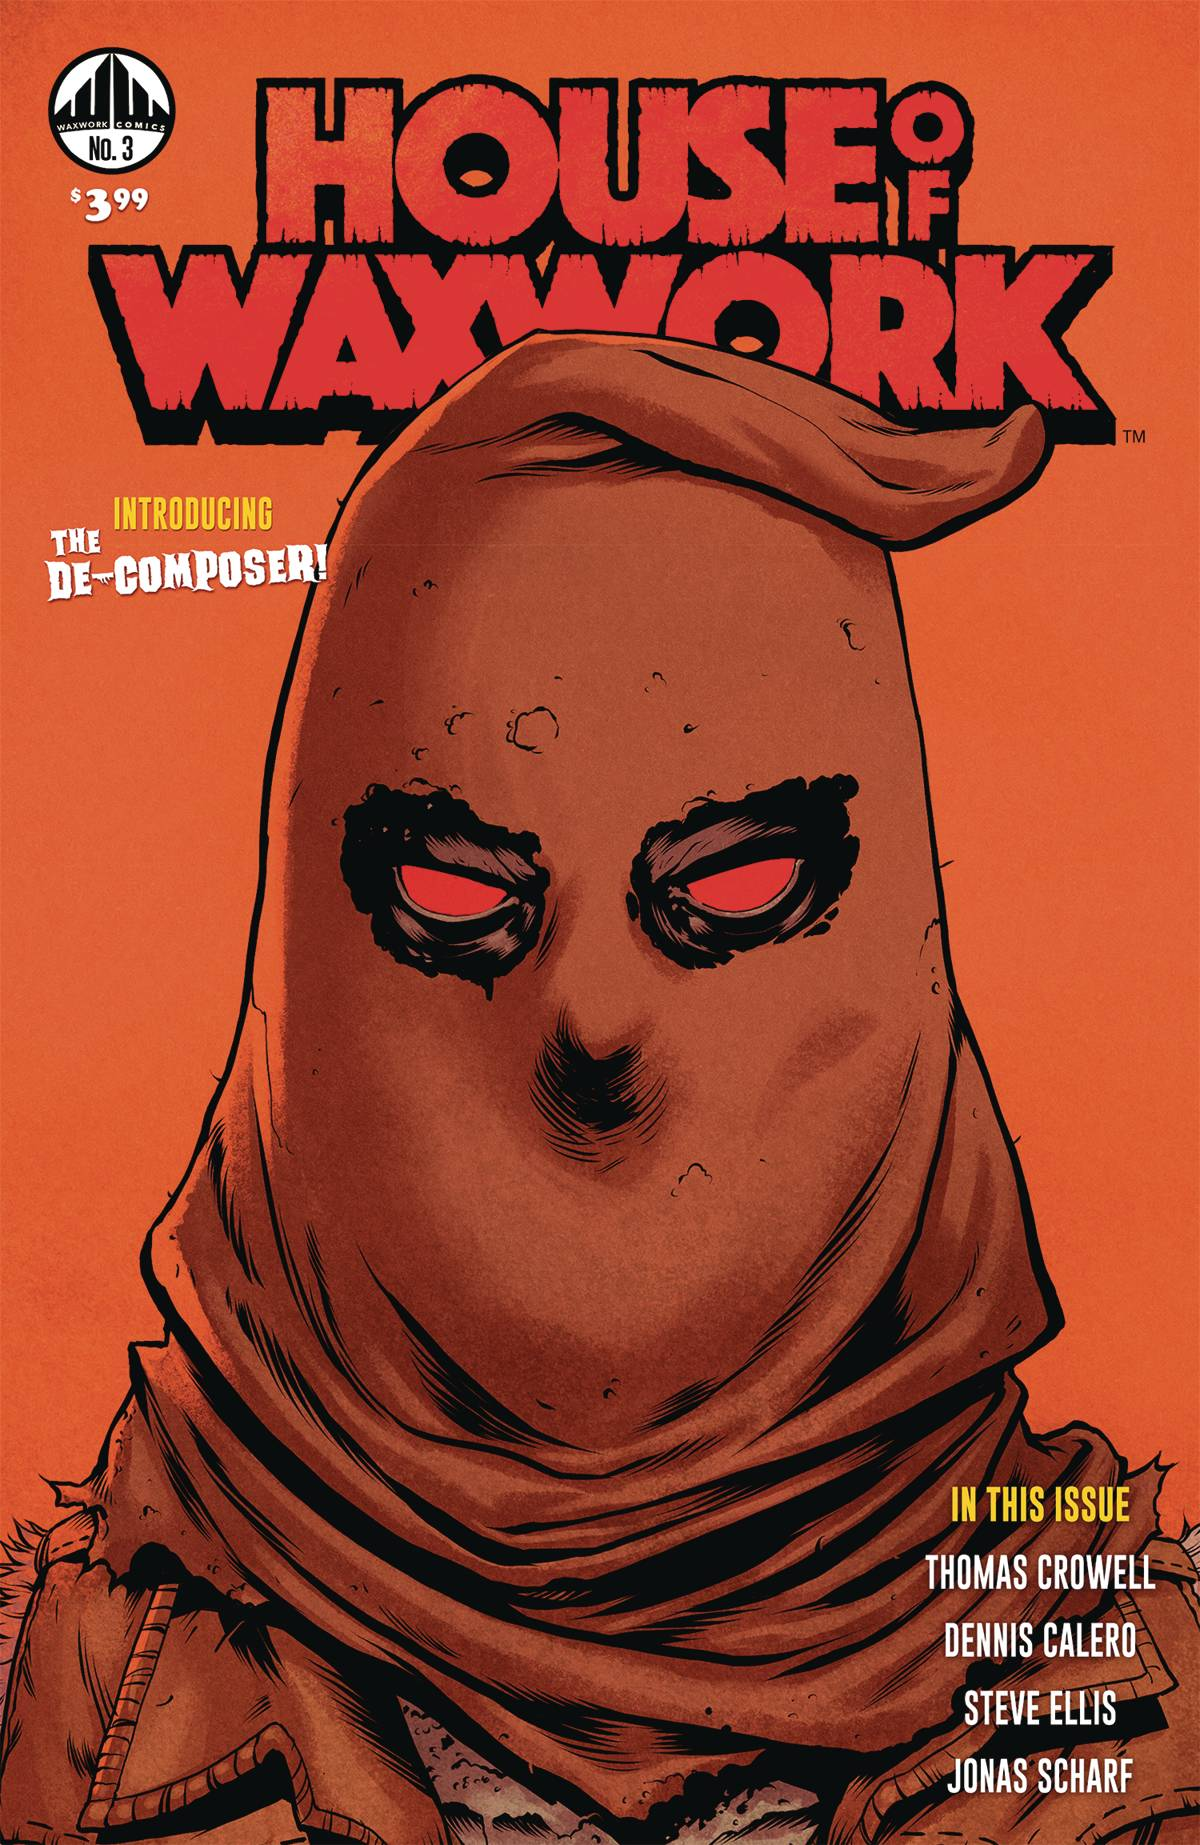 House Of Waxwork #3 (2018)